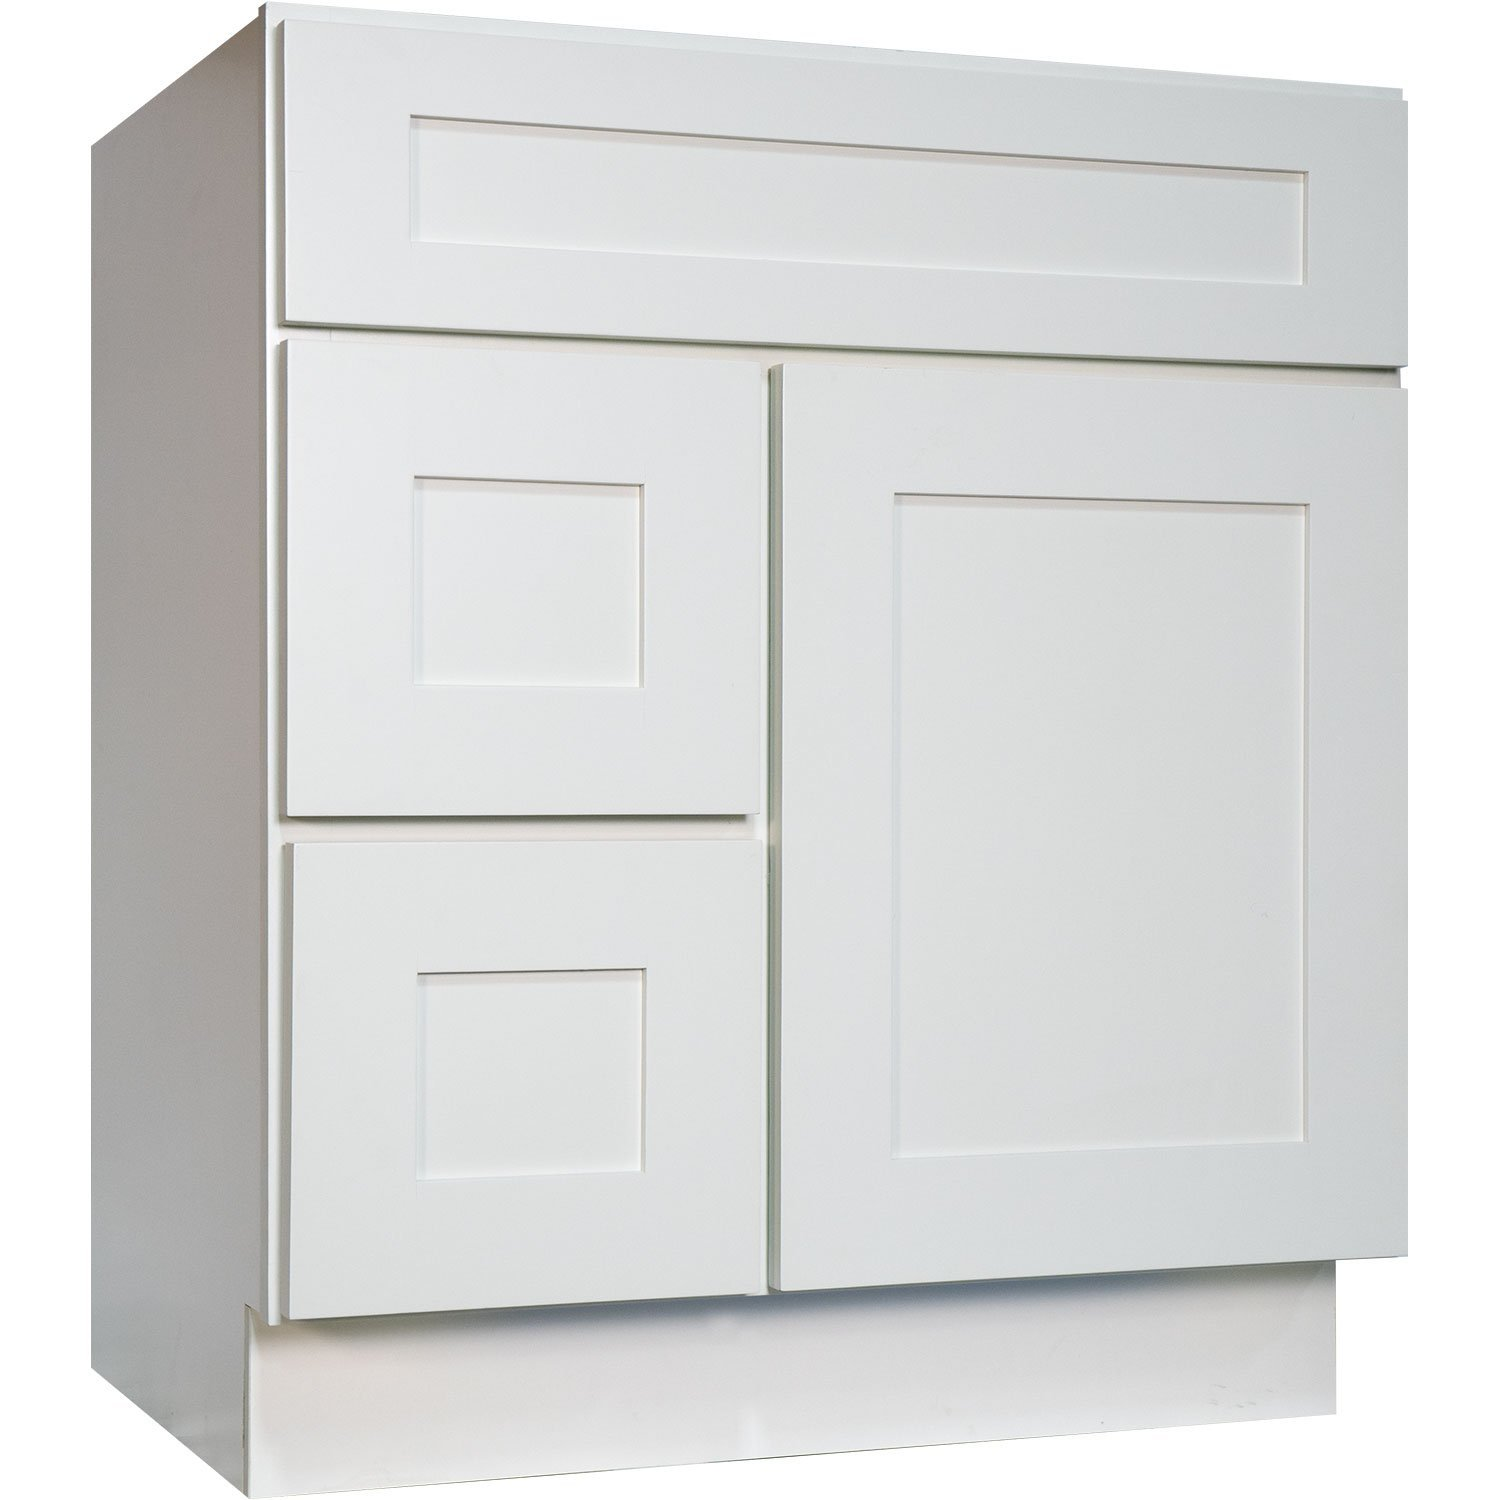 Everyday Cabinets 30 Inch Bathroom Vanity Single Sink Cabinet in ...